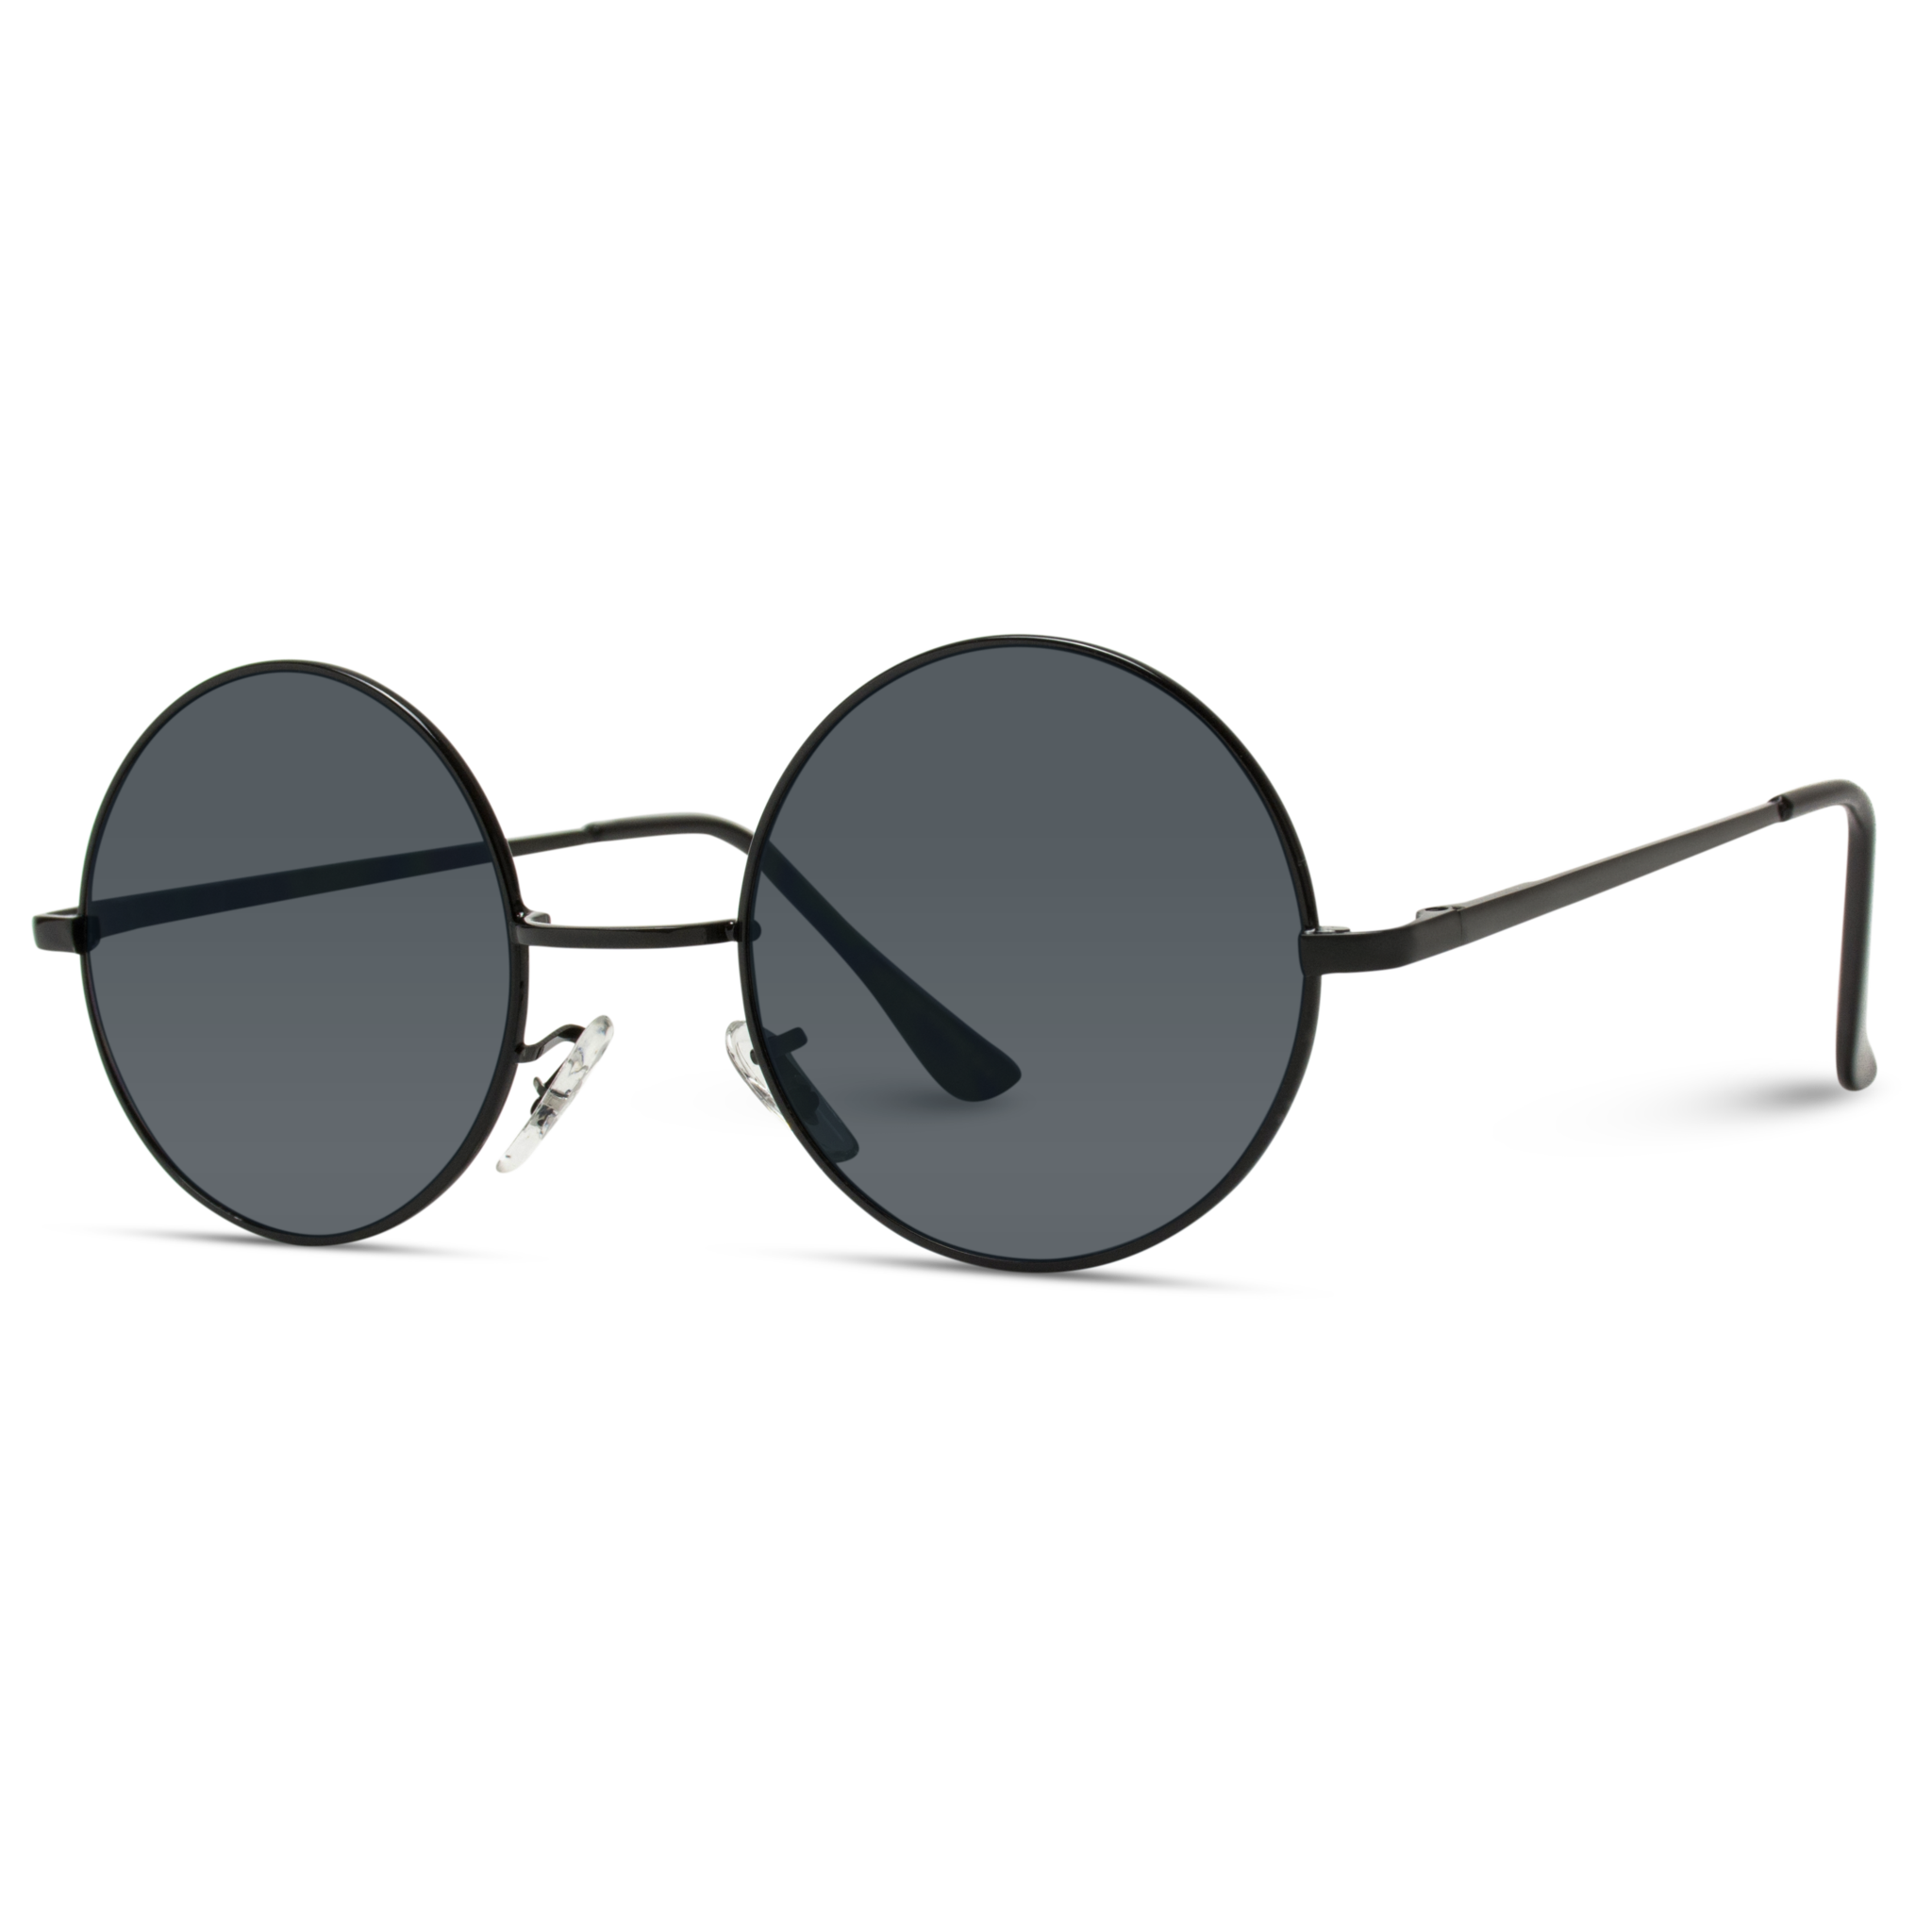 ef92bab268a Retro Round Metal Hippie Sunglasses - John Lennon Inspired Sunglasses.  Classic pair of small round